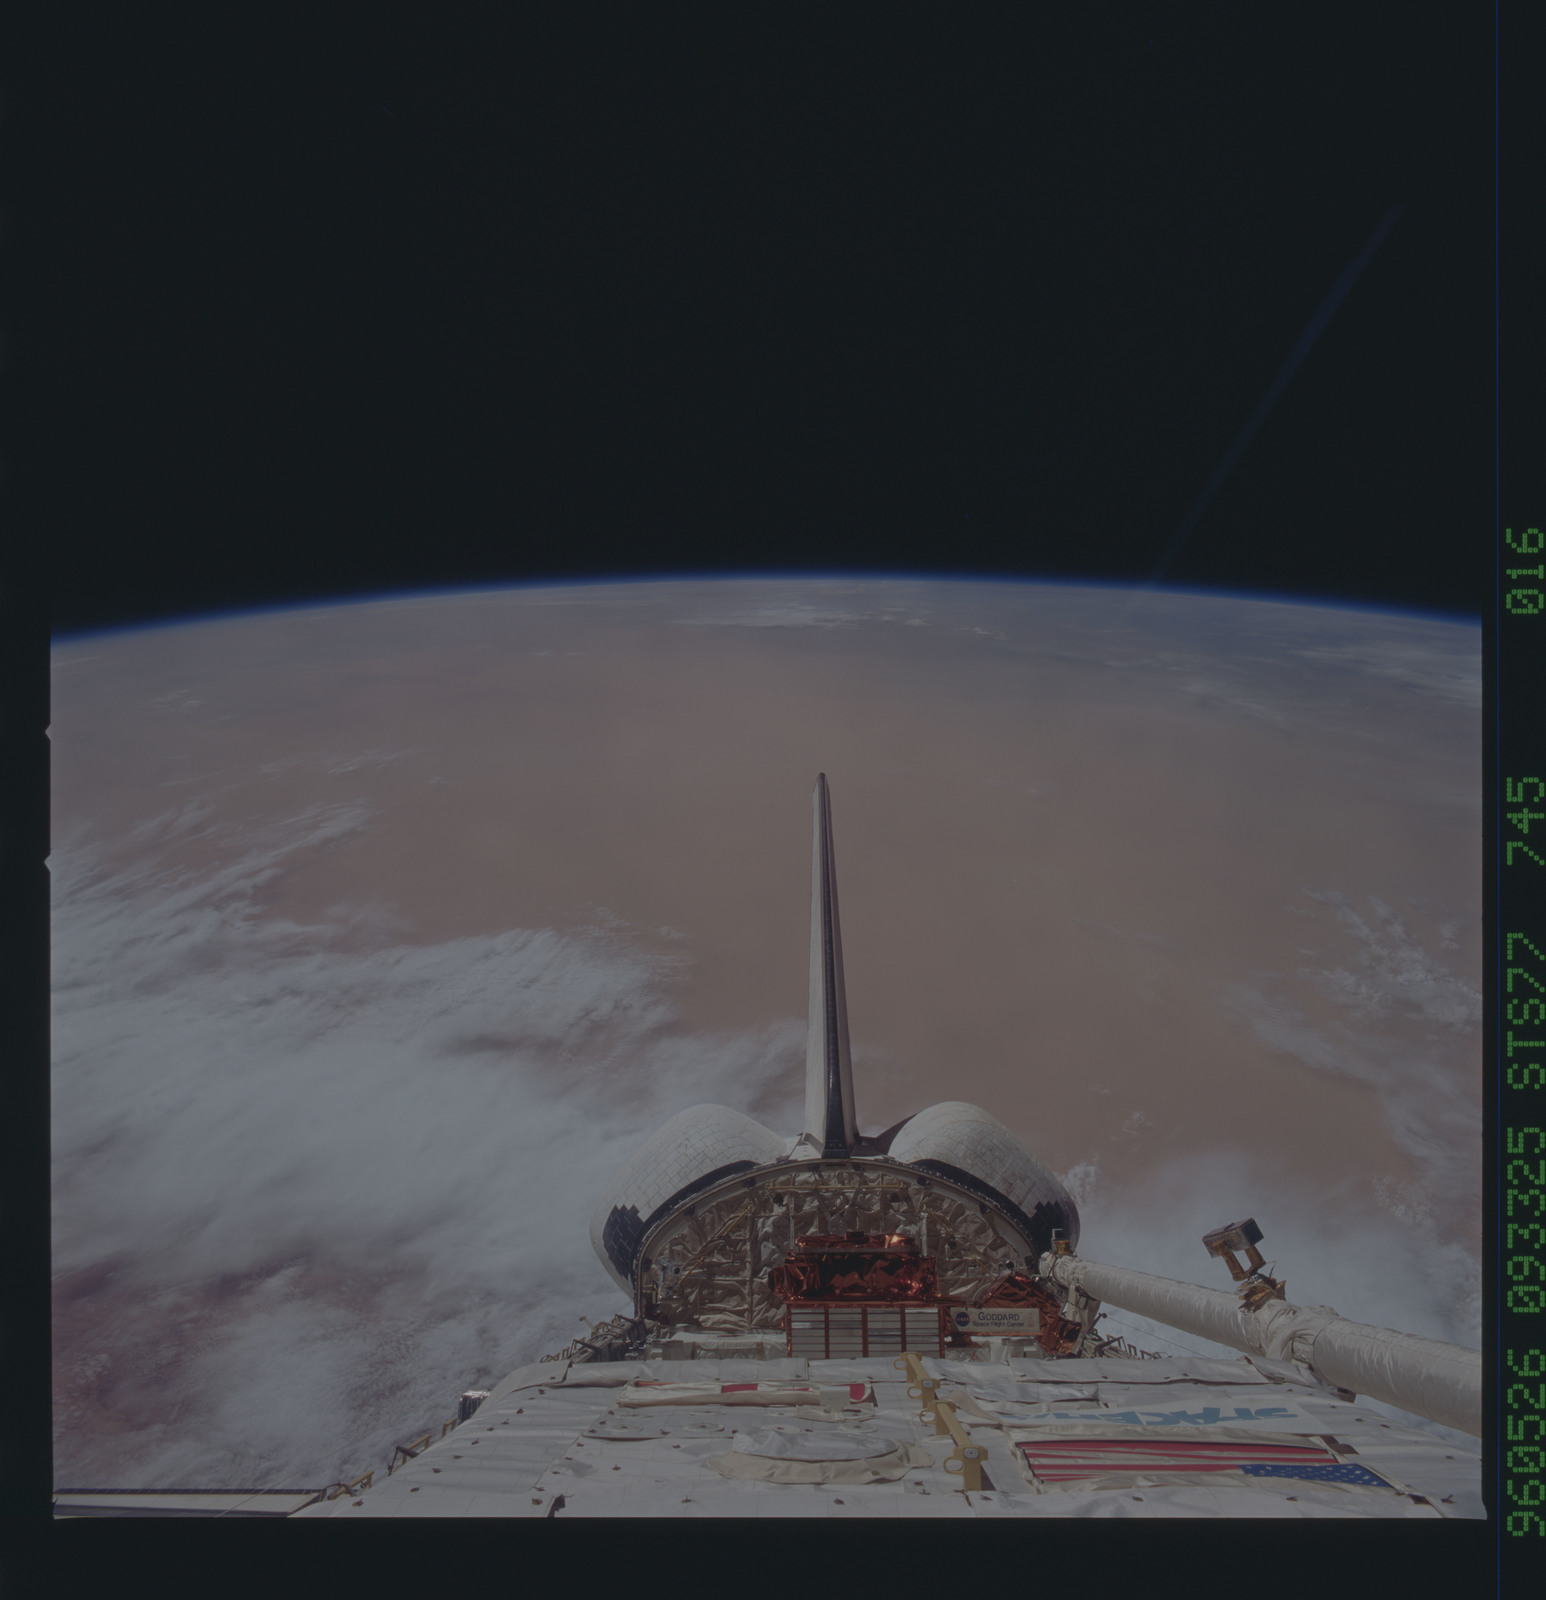 STS077-745-016 - STS-077 - View of the Endeavour's payload bay